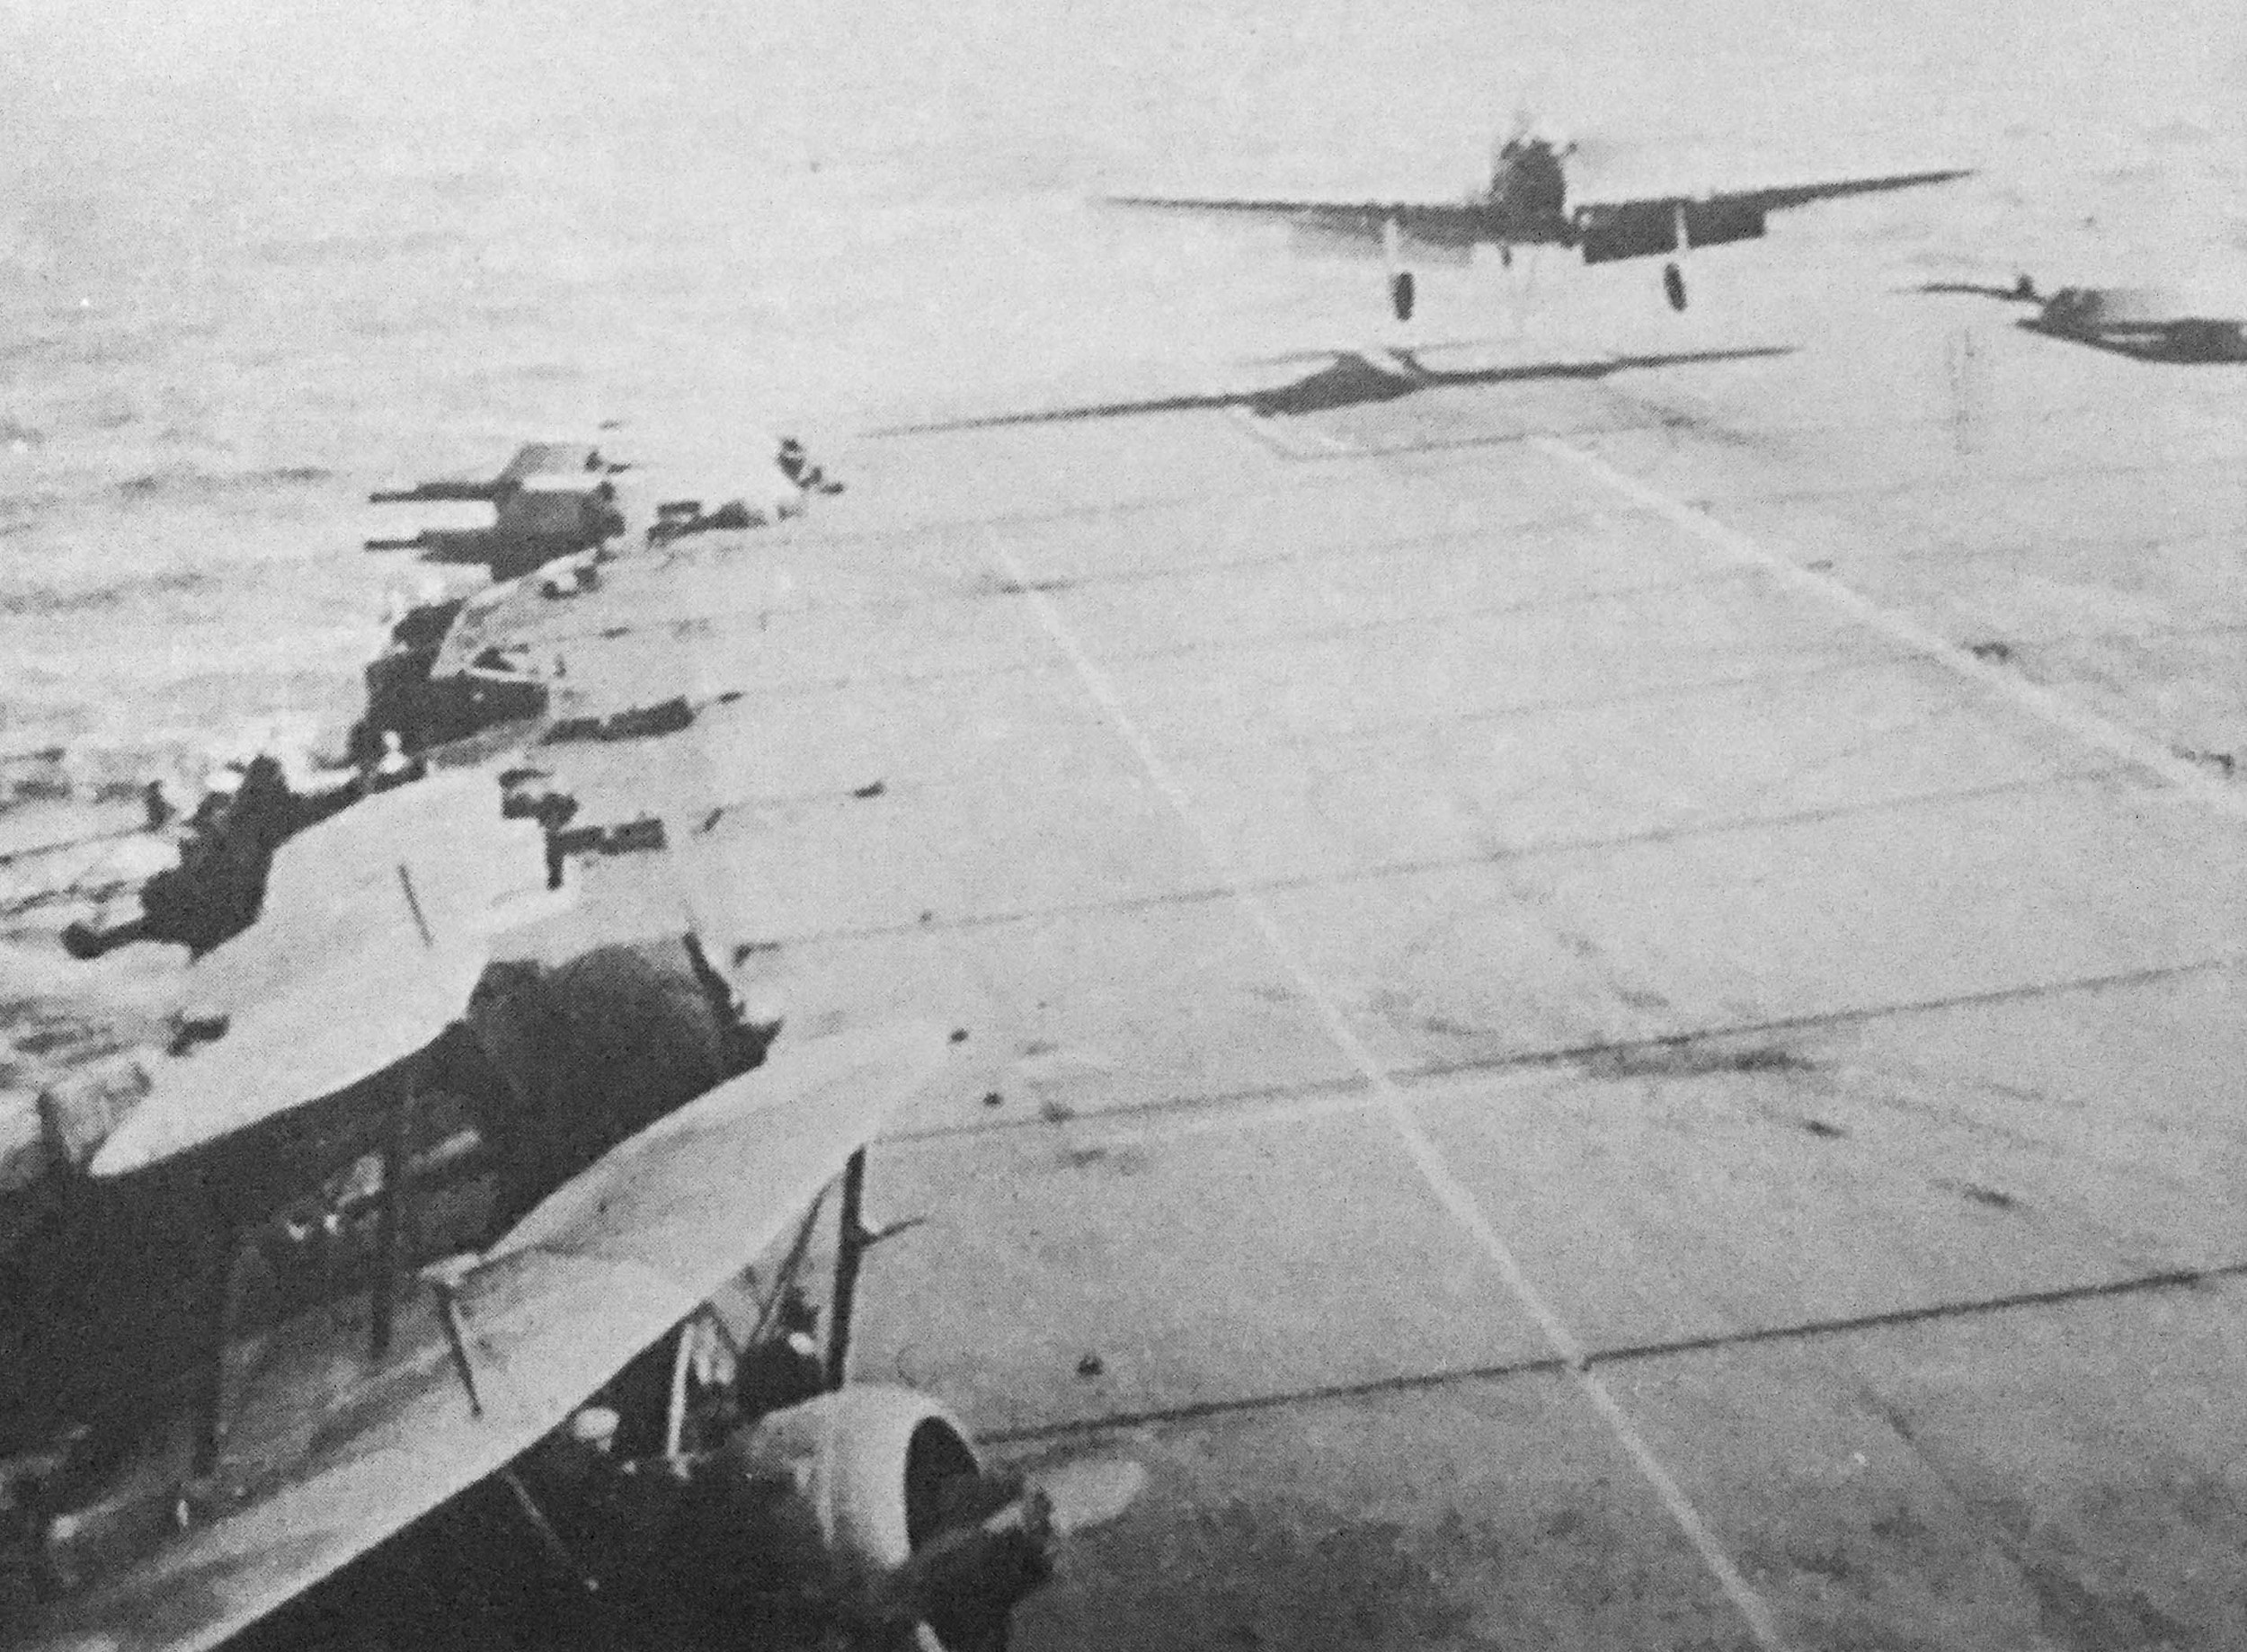 A poor quality but significant photograph as it shows two Sea Gladiators, bottom left, on outriggers while aboard HMS Illustrious during Operation Judgement. A Fulmar is about to touch-down.